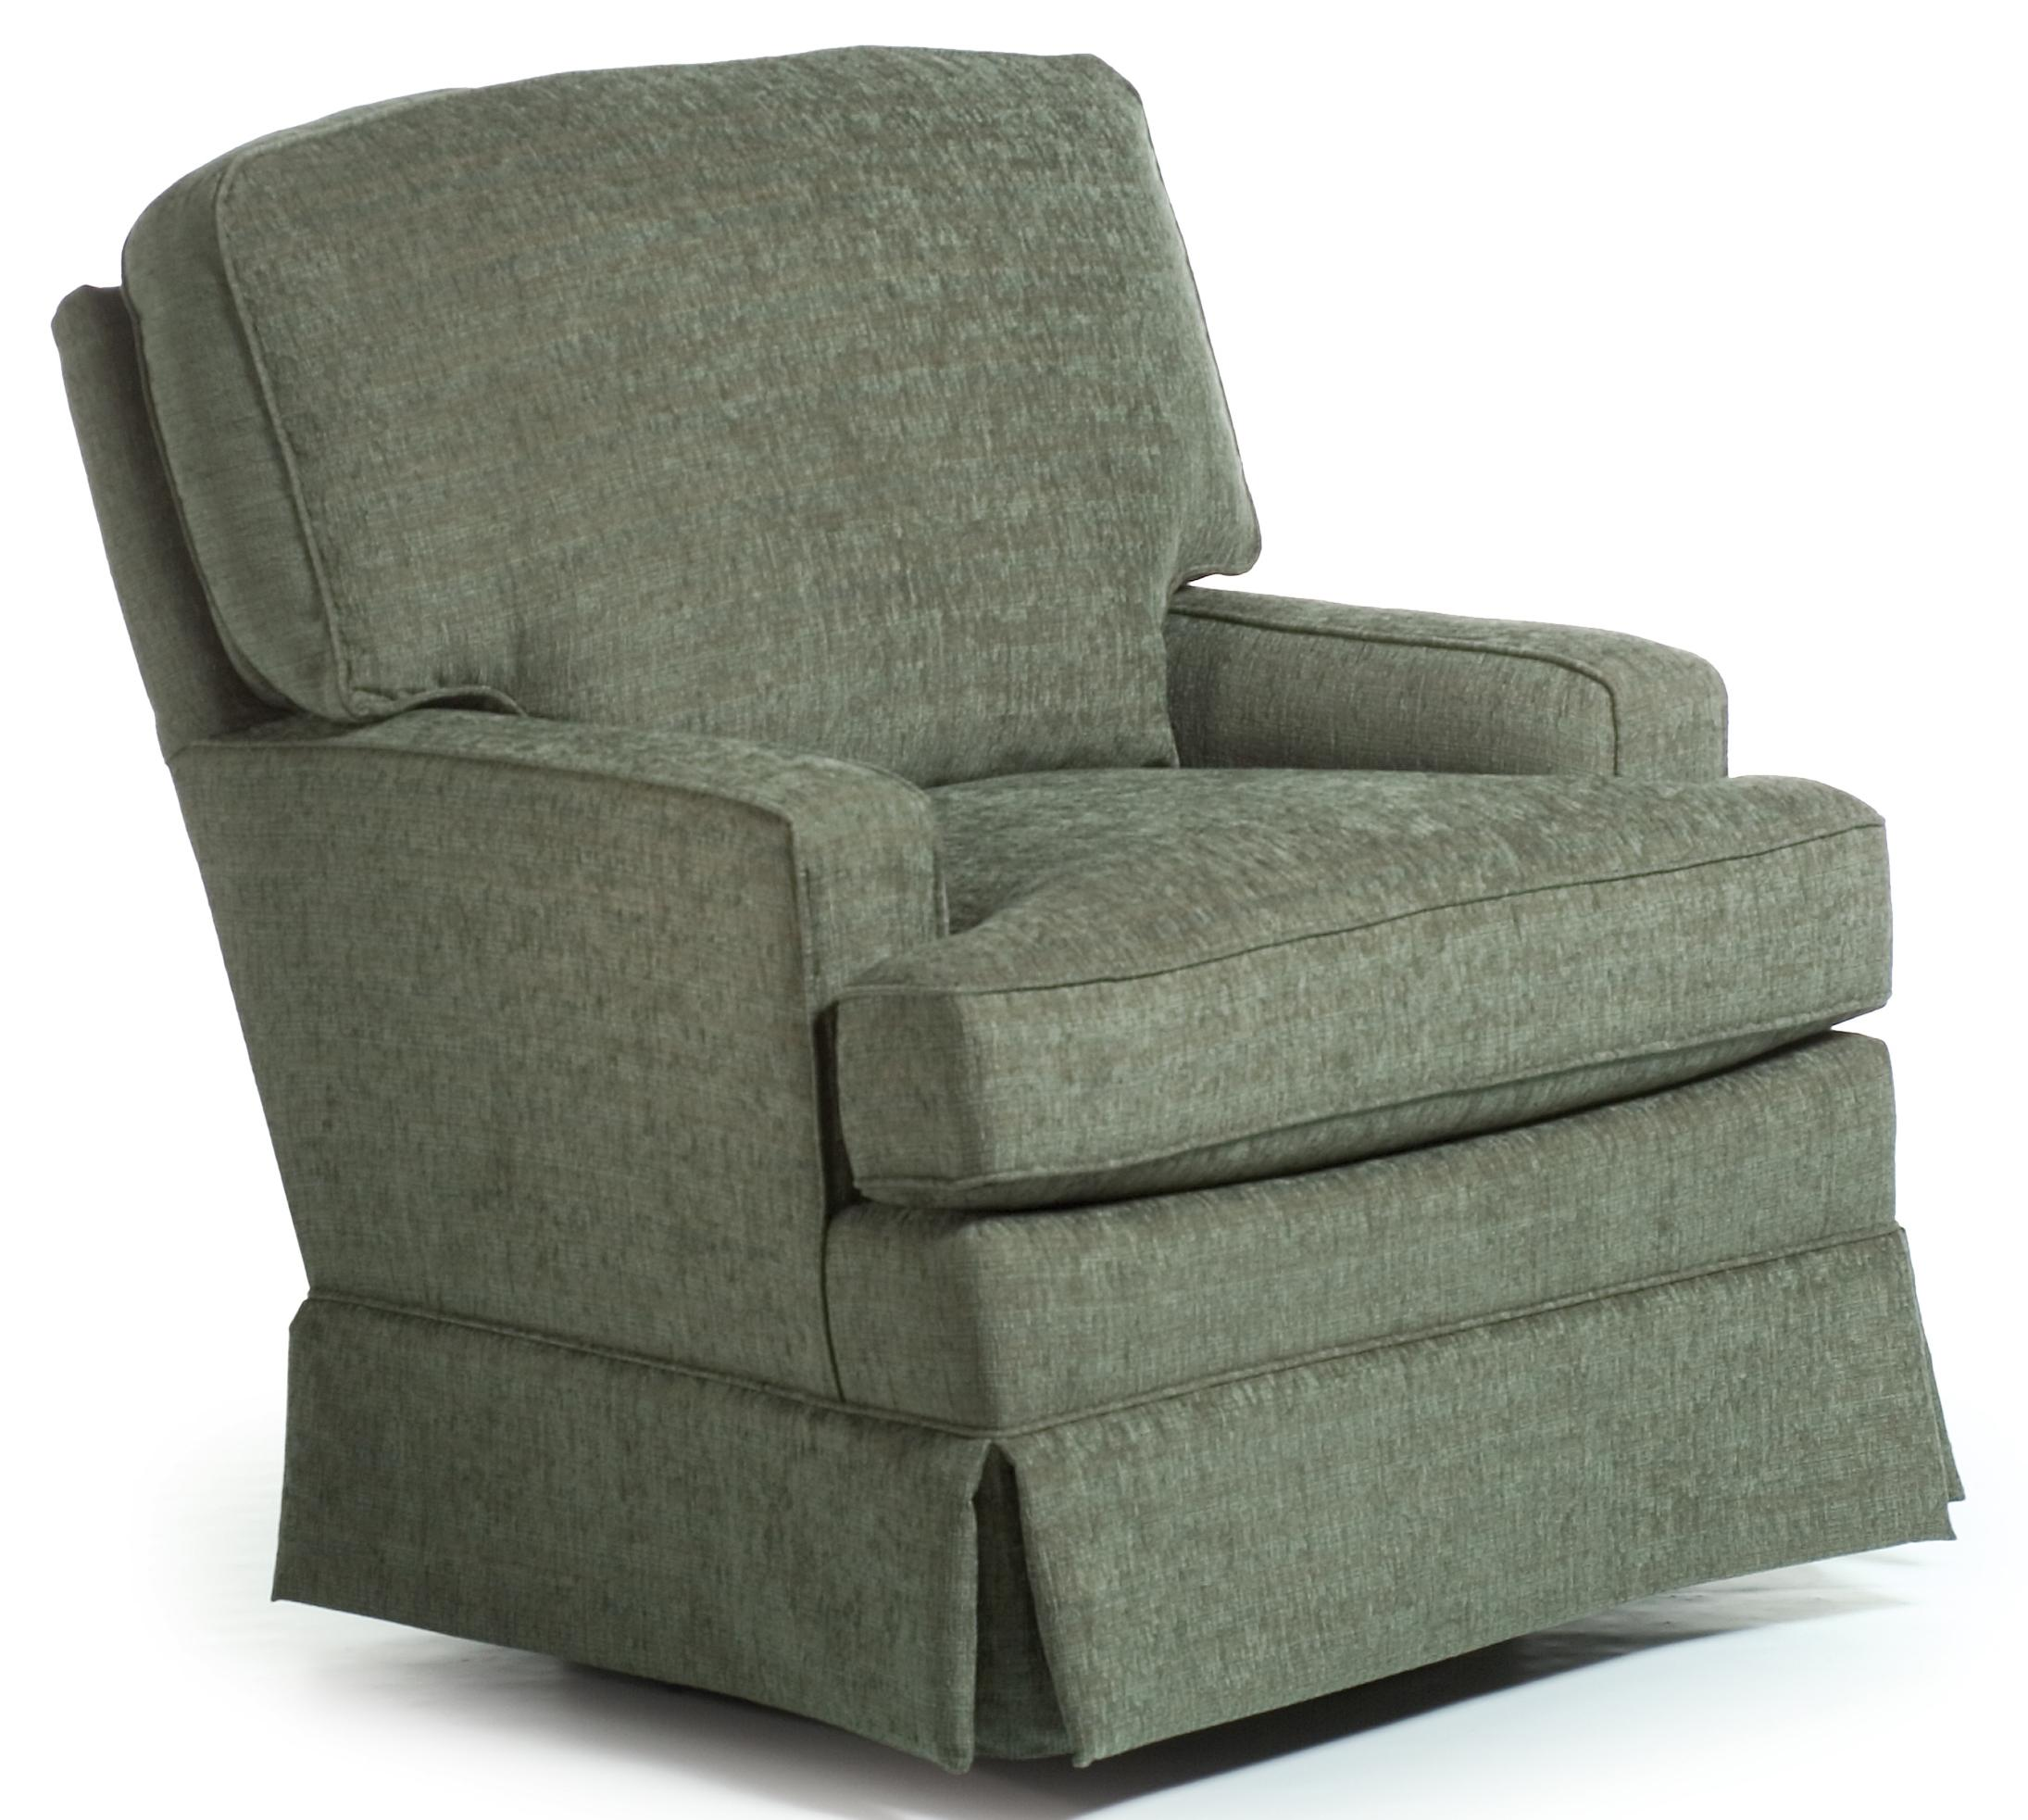 Best Swivel Chair Best Chairs Storytime Series Storytime Swivel Chairs And